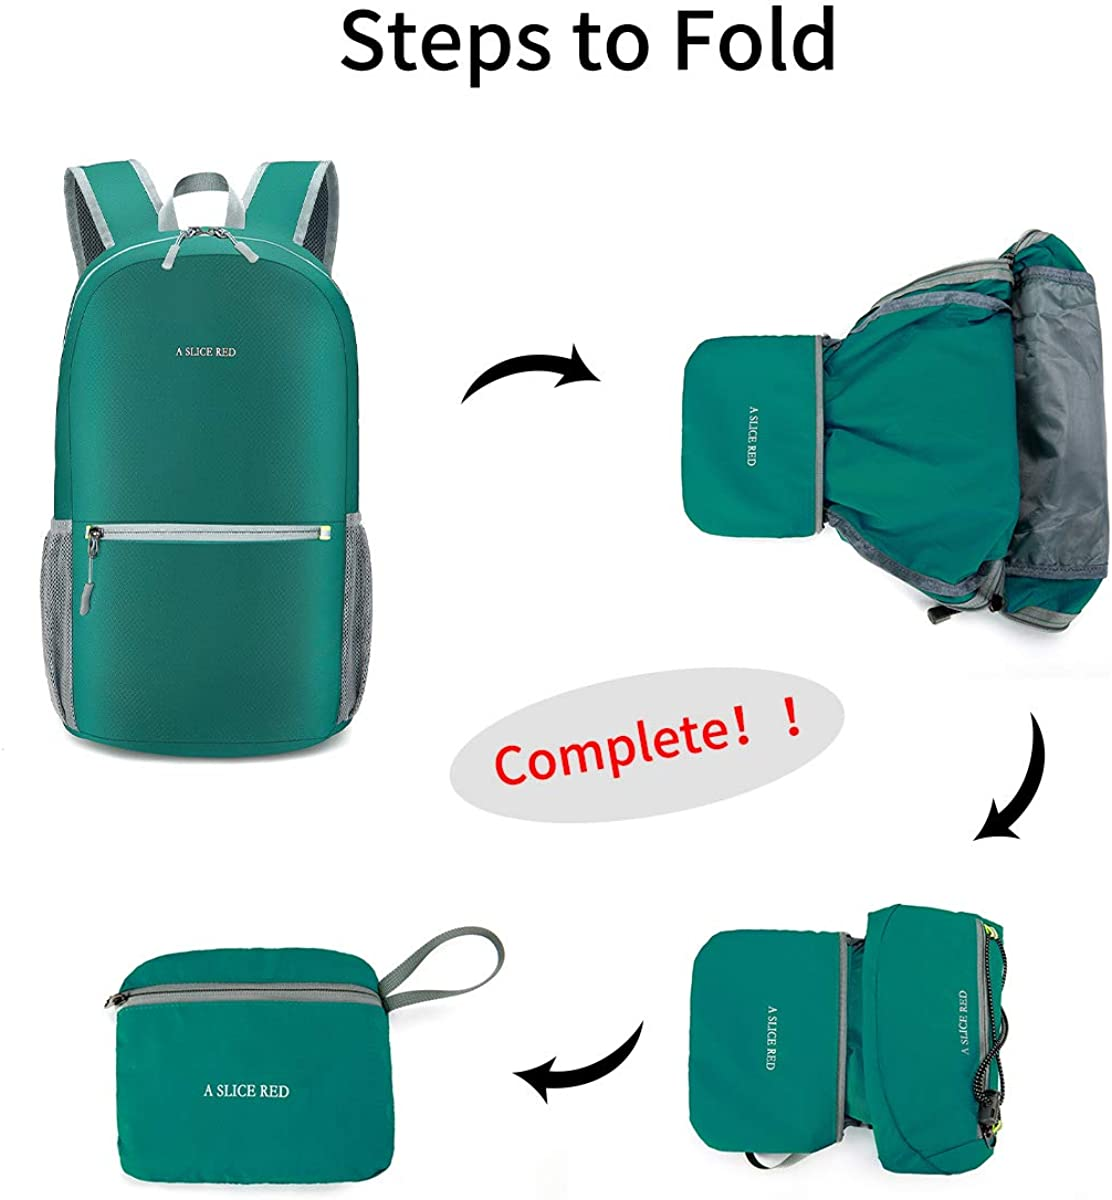 A SLICE RED Ultra Lightweight Packable Backpack The Most Durable Water Resistant Travel Hiking Backpack Daypack